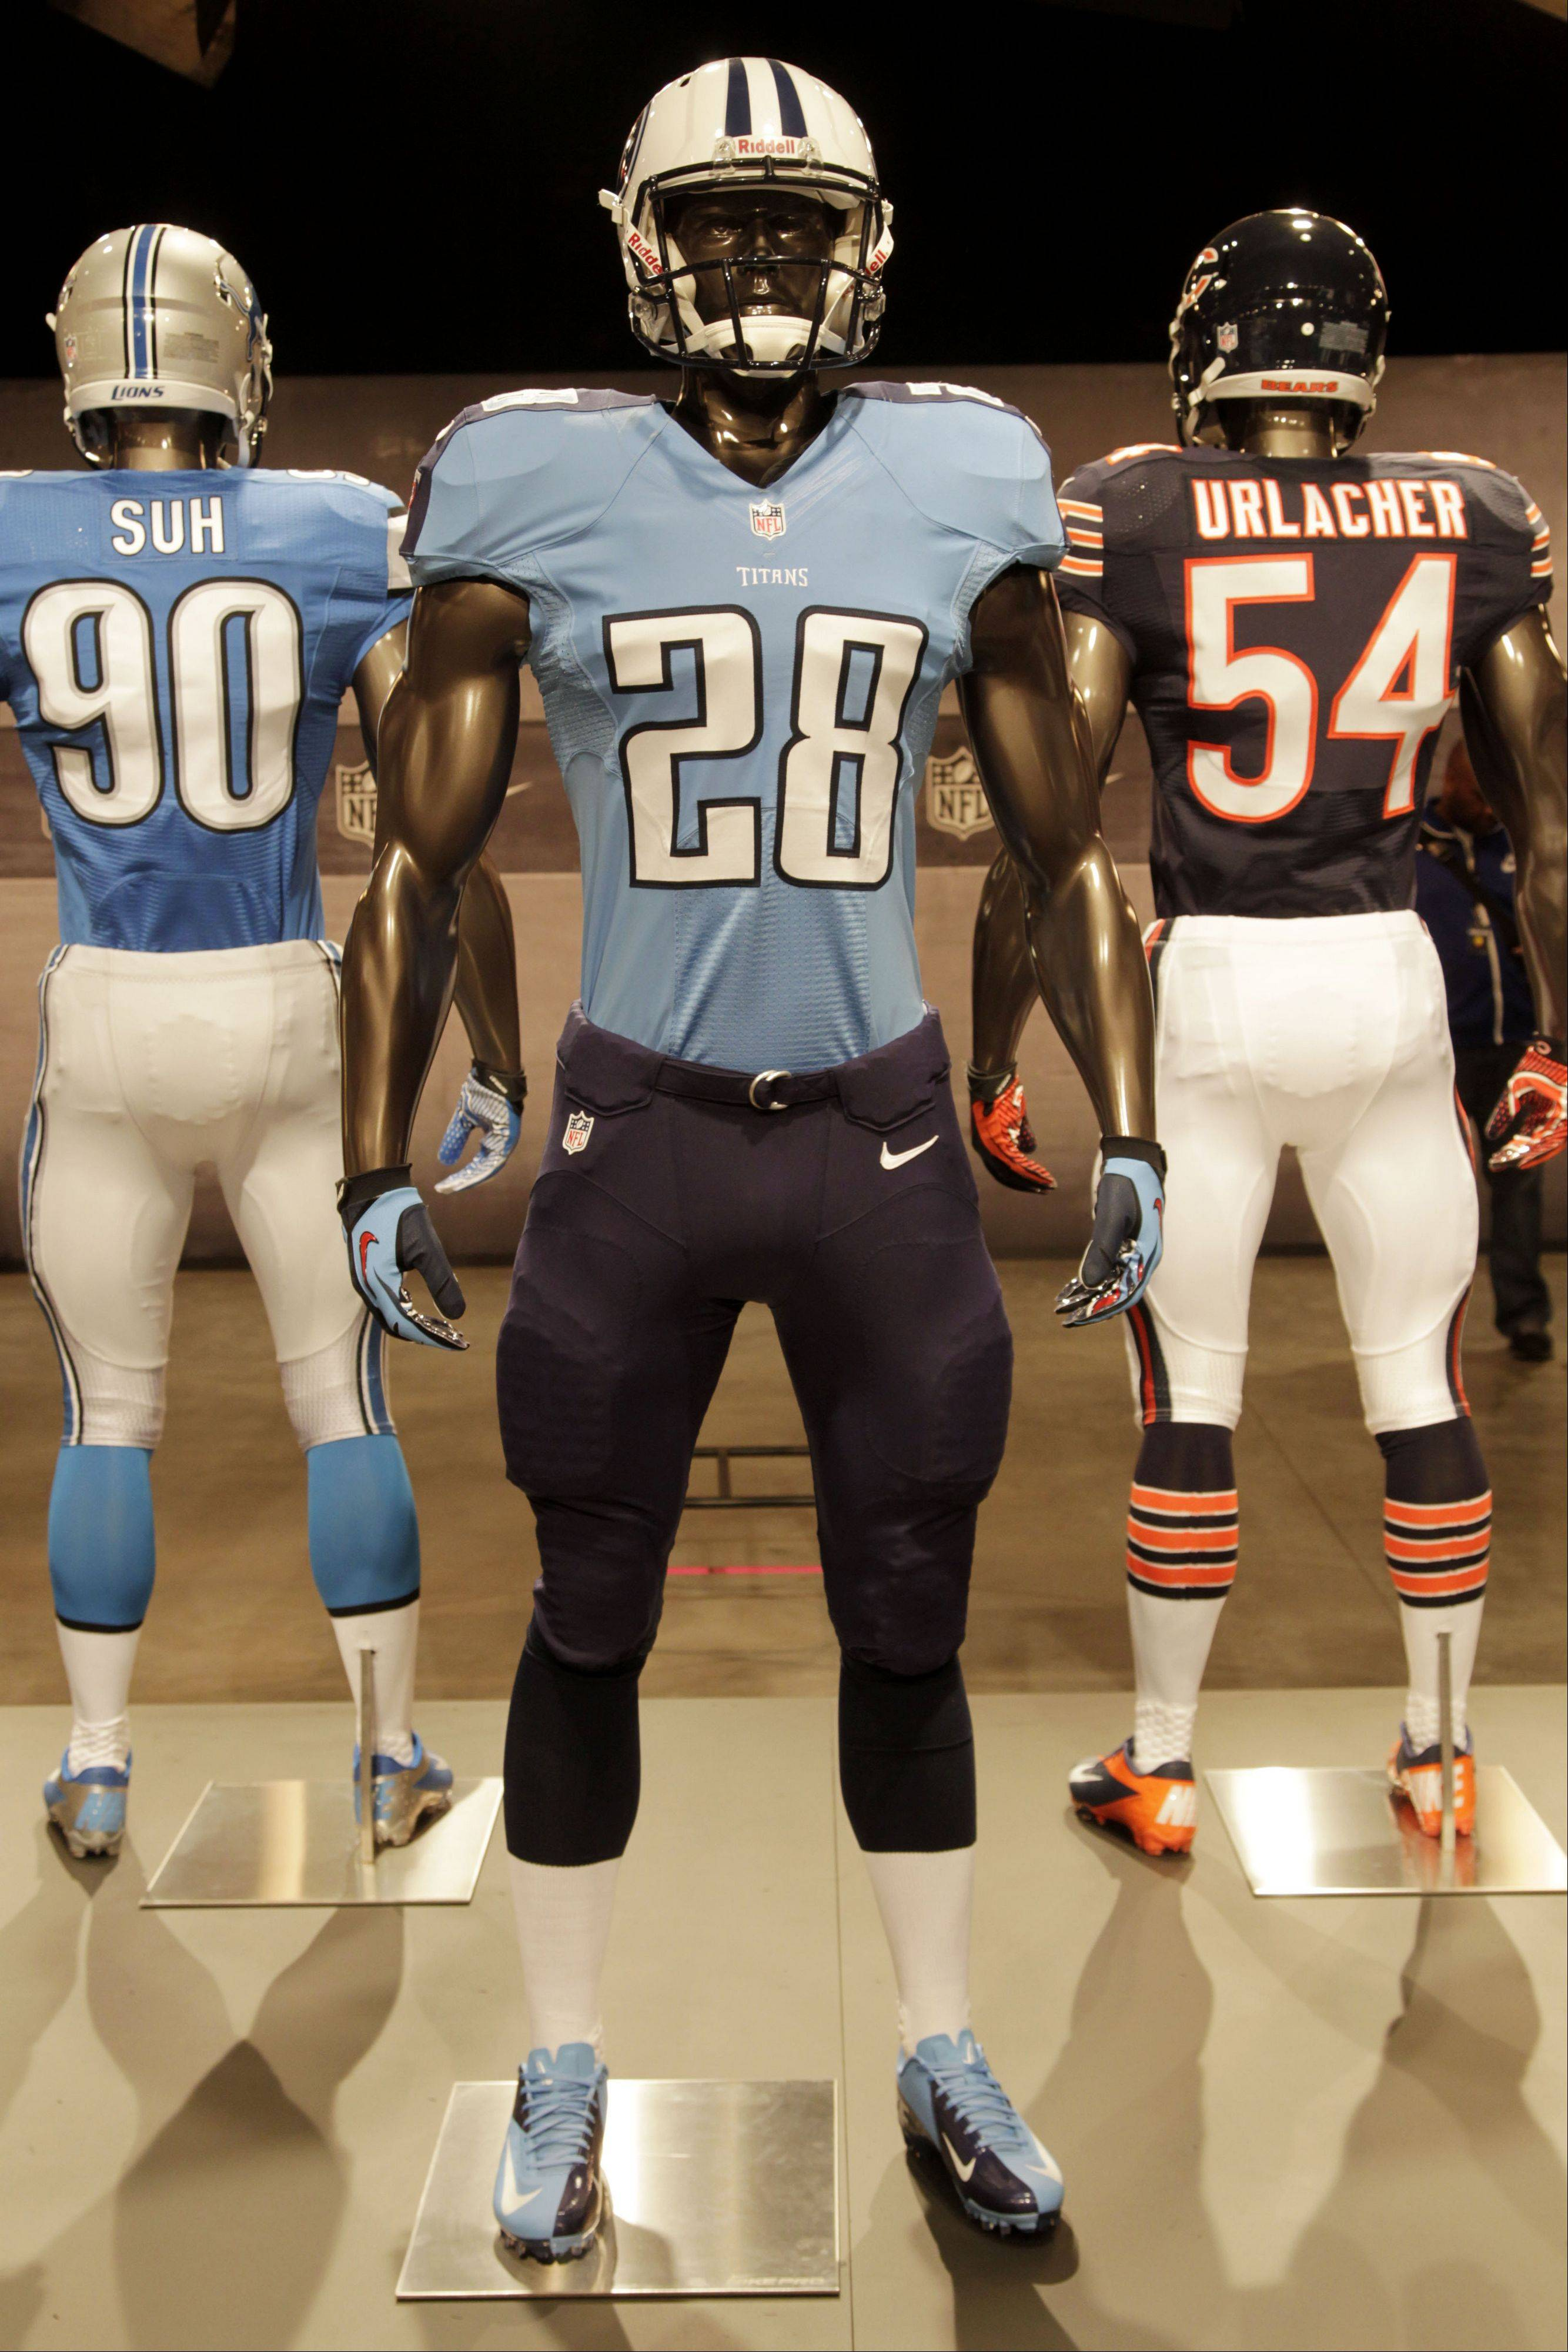 The new Tennessee Titans uniform is displayed on a mannequin in New York, Tuesday, April 3, 2012. NFL has unveiled its new sleek uniforms designed by Nike. While most of the new uniforms are not very different visually, they all are made with new technology that make them lighter, dryer and more comfortable.